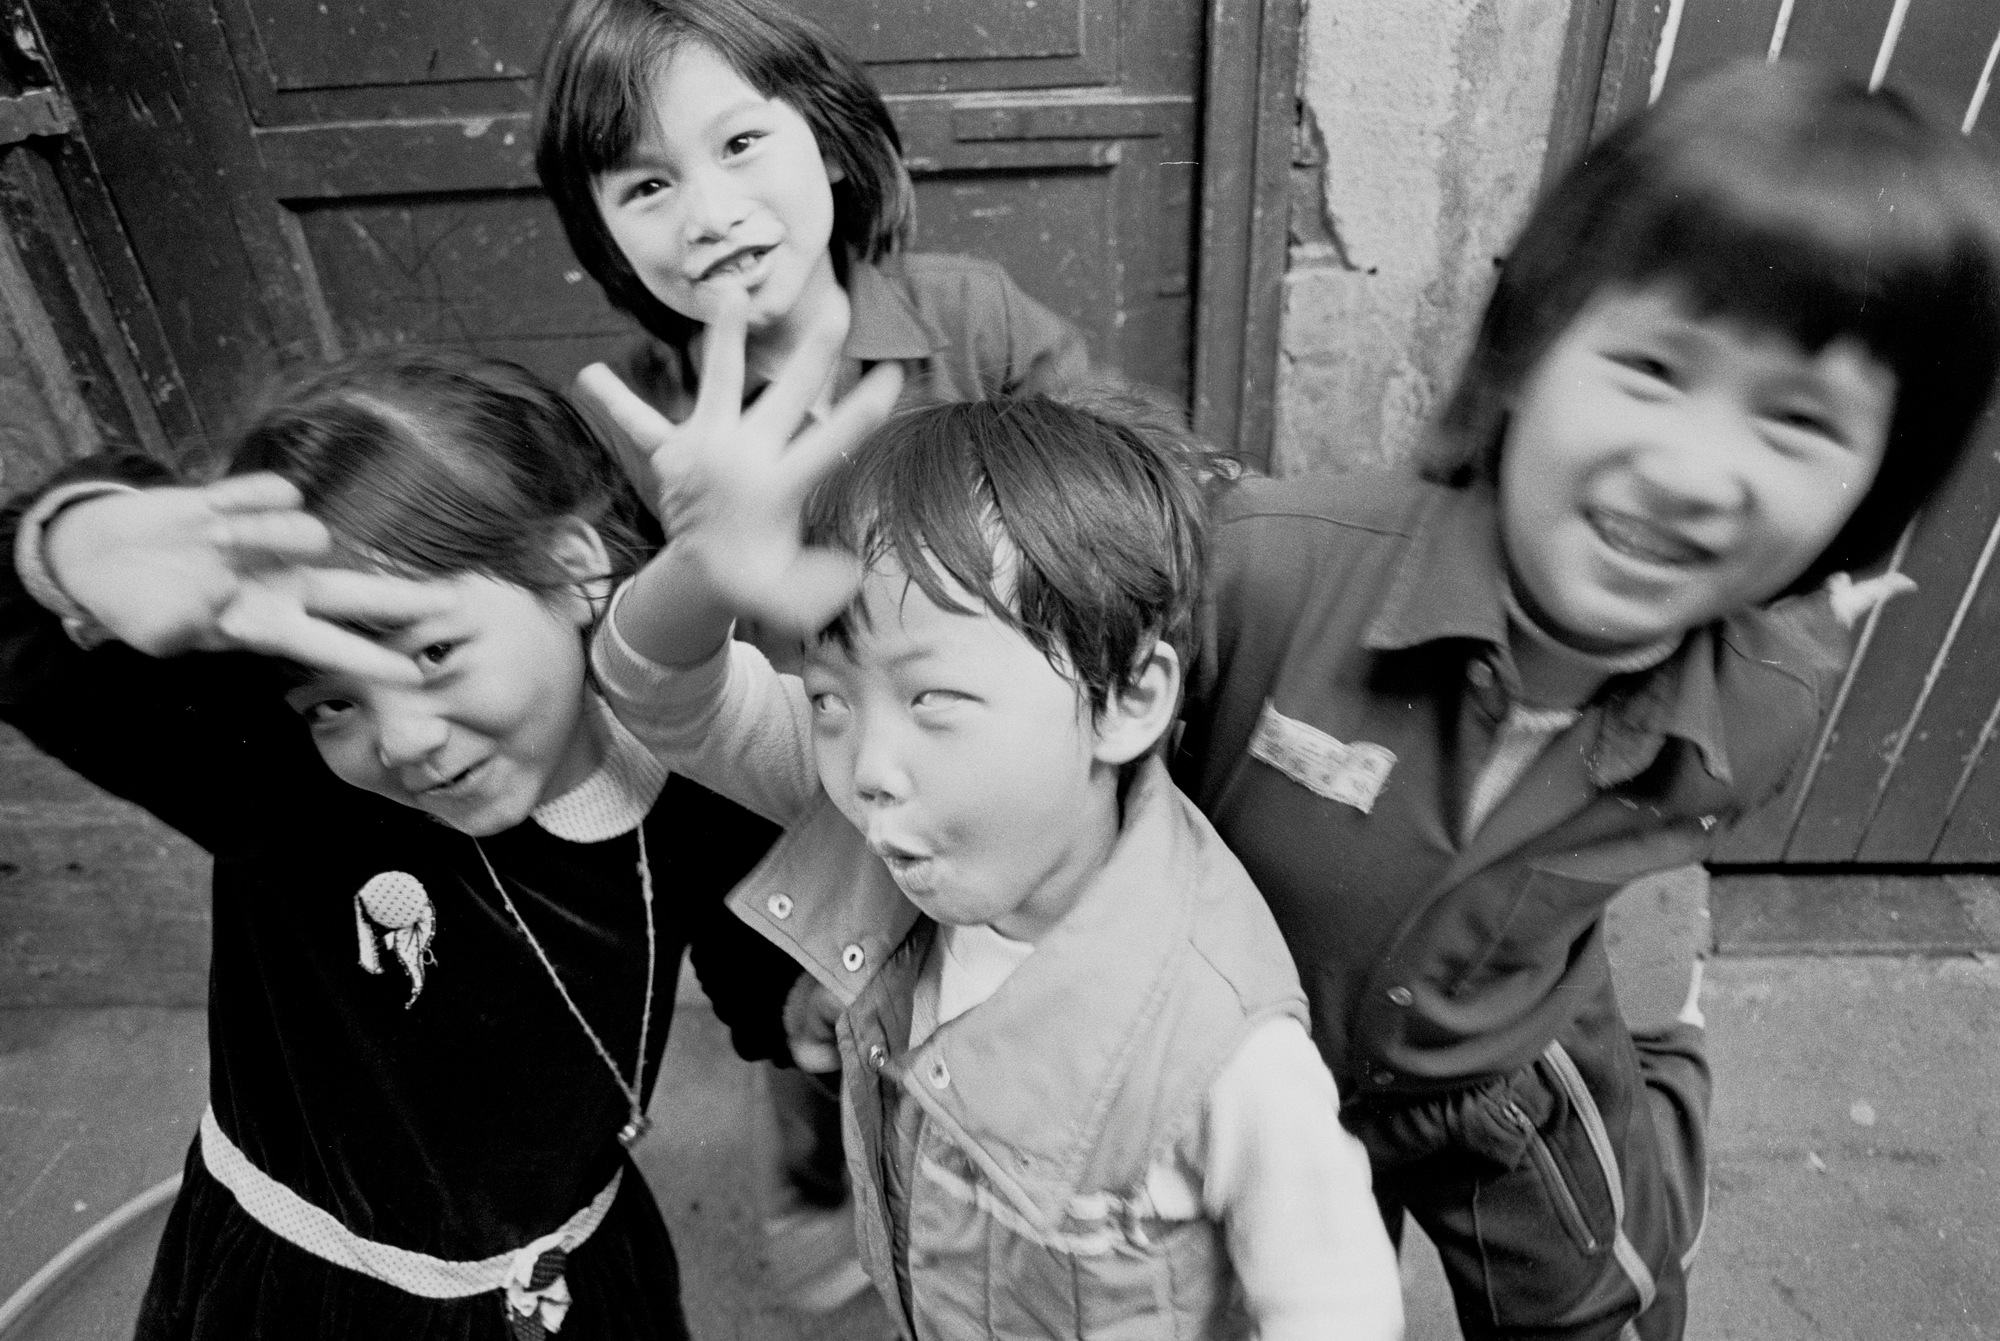 TAIPEI PEOPLE, 1988 by chaoyang chan